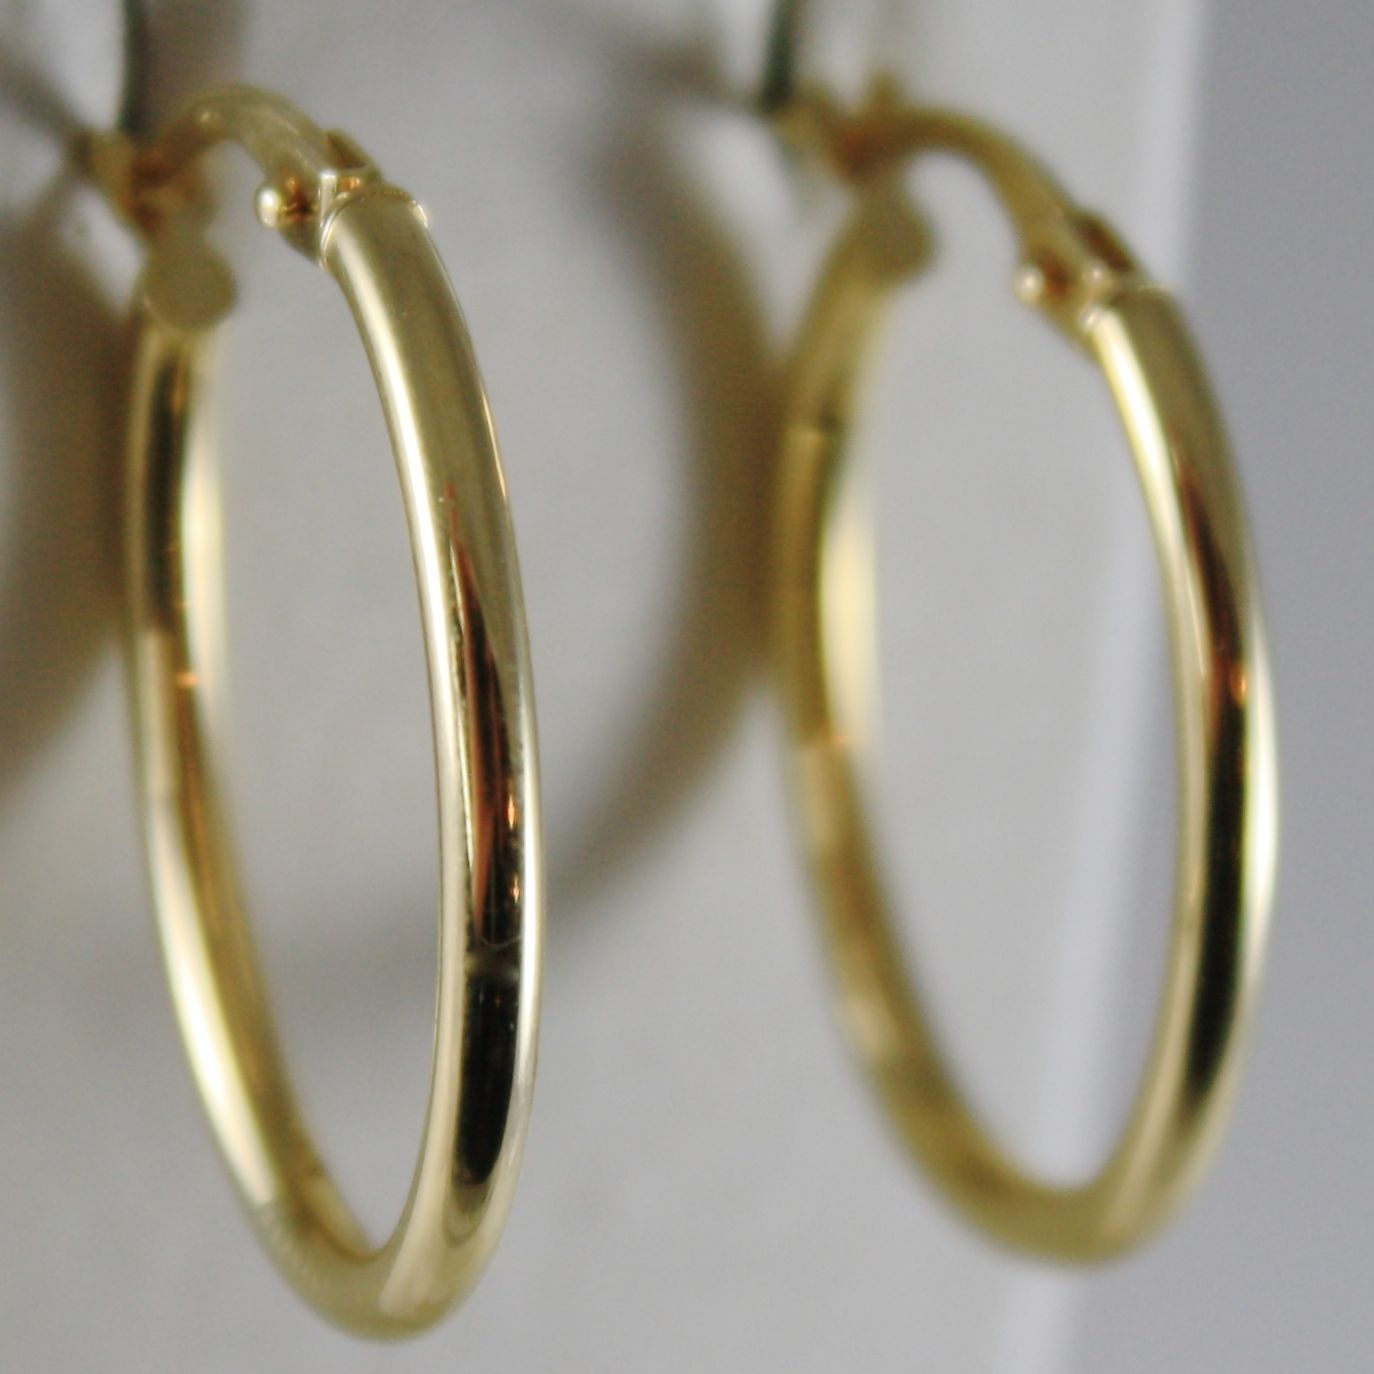 18K YELLOW GOLD EARRINGS OVAL HOOP 18 MM 0.71 INCHES DIAMETER MADE IN ITALY